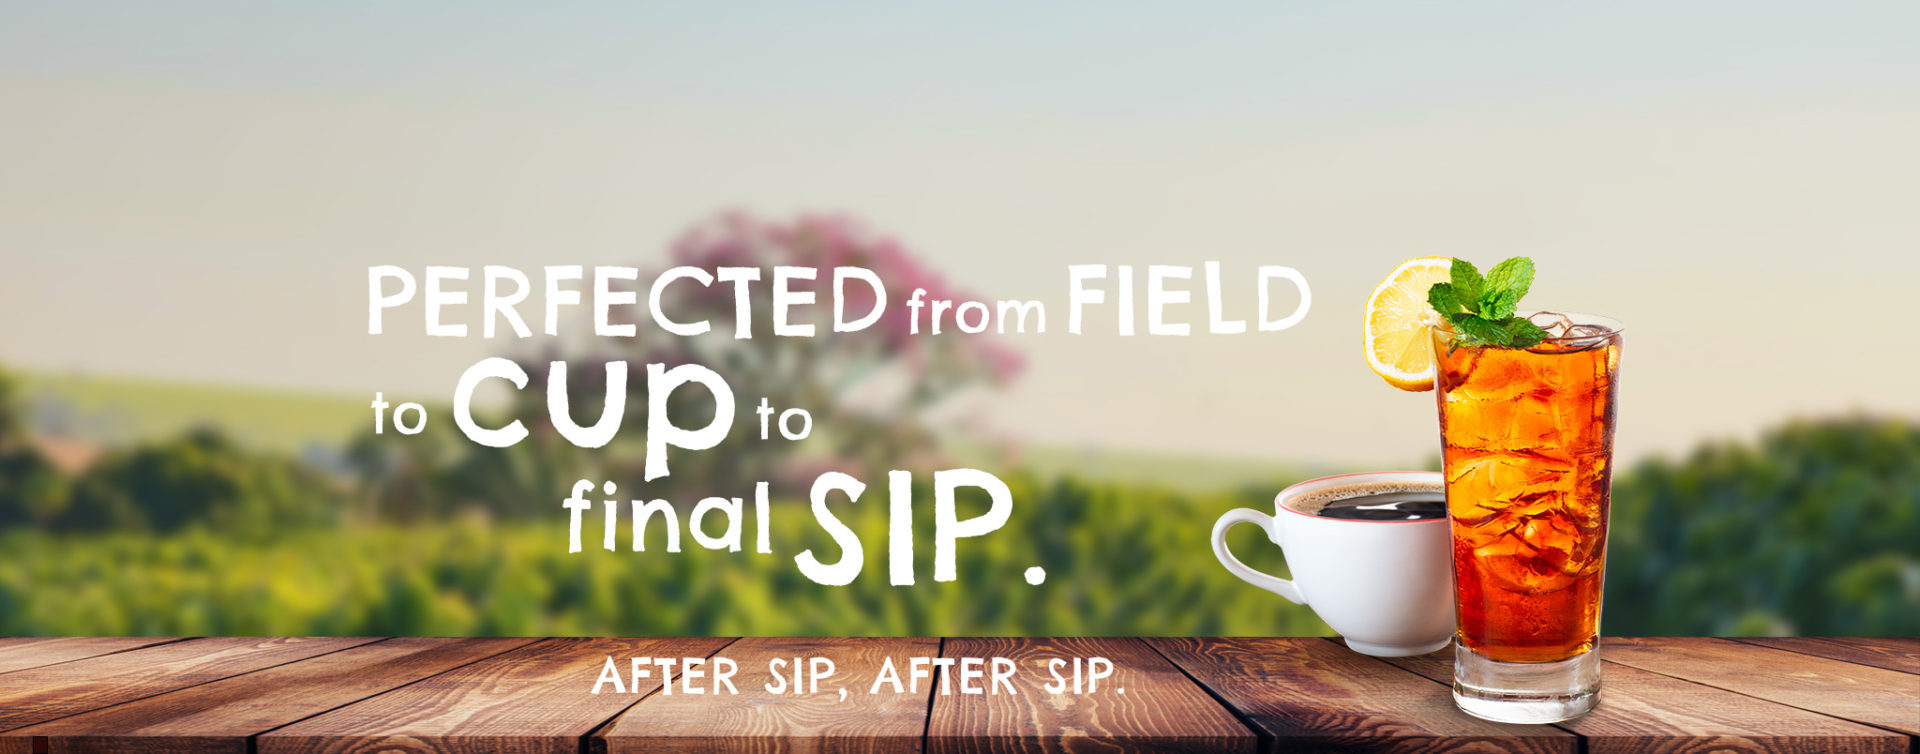 Perfect Tea from Field to Cup